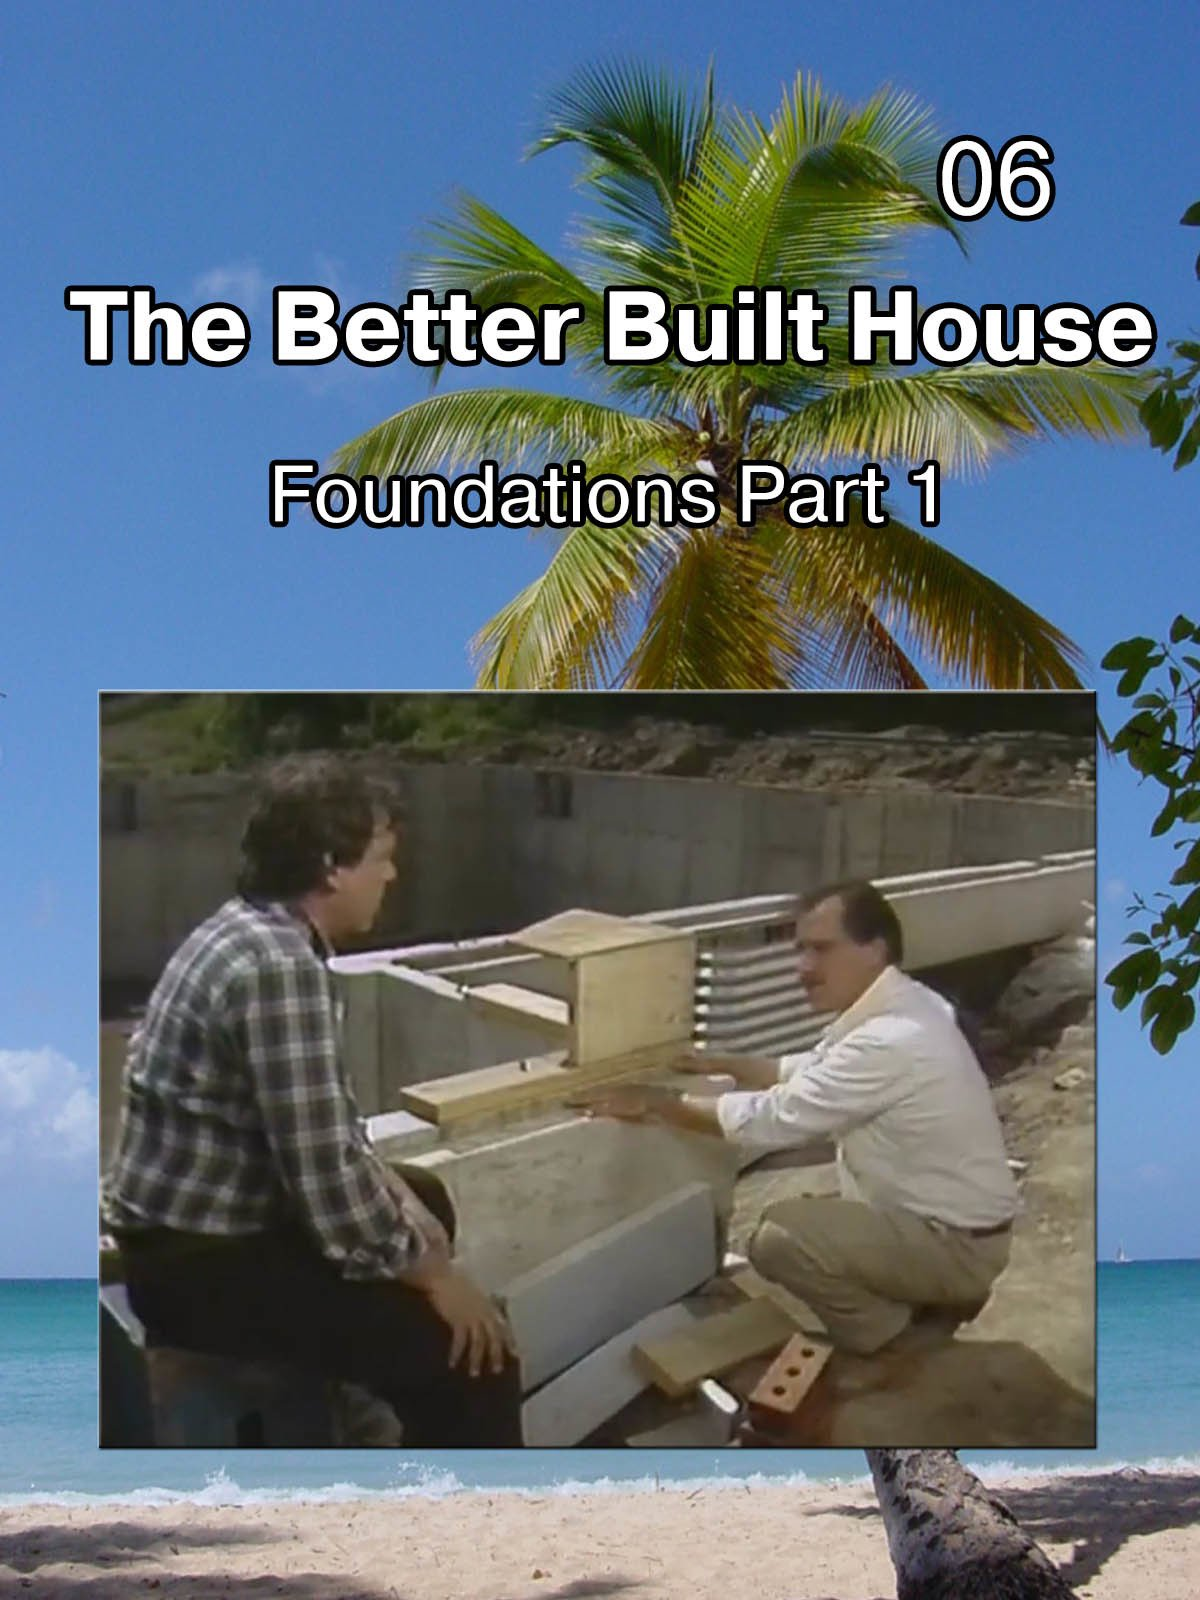 The Better Built House 06 Foundations (Part 1) on Amazon Prime Instant Video UK